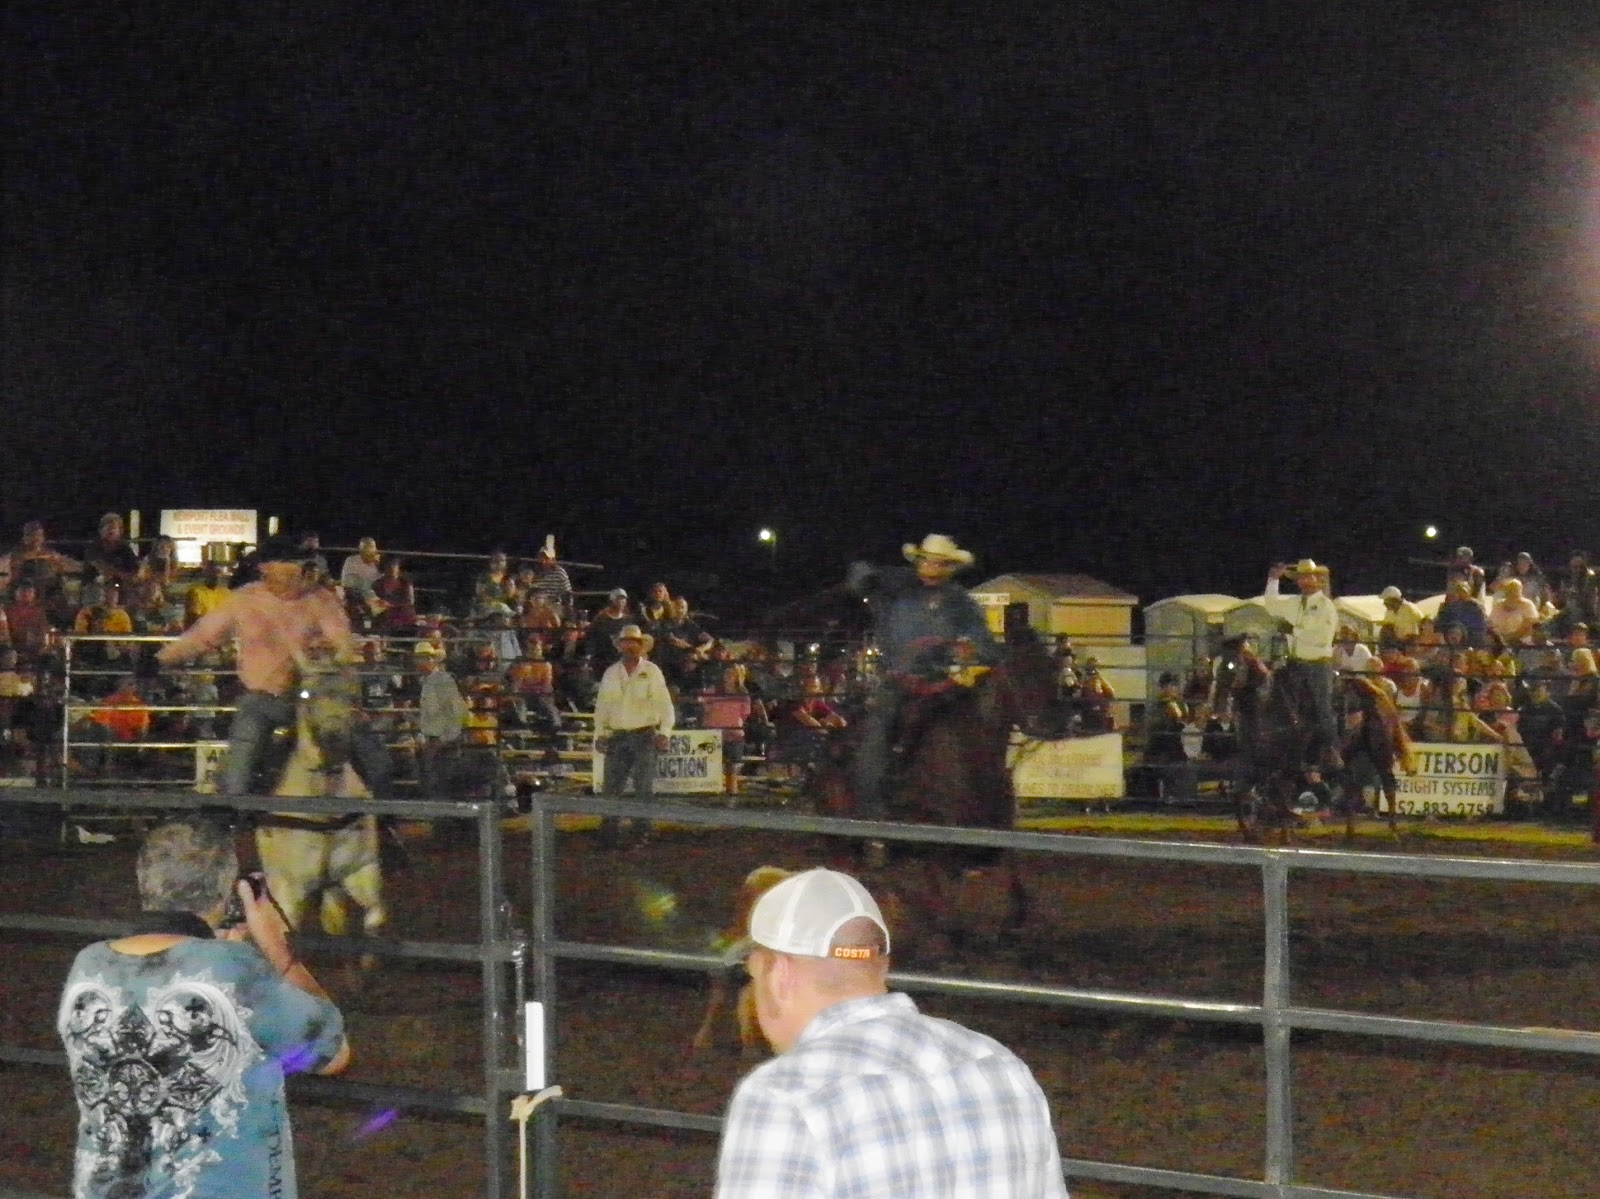 The Goodfellows Rodeo 7 21 12 Newport Nc